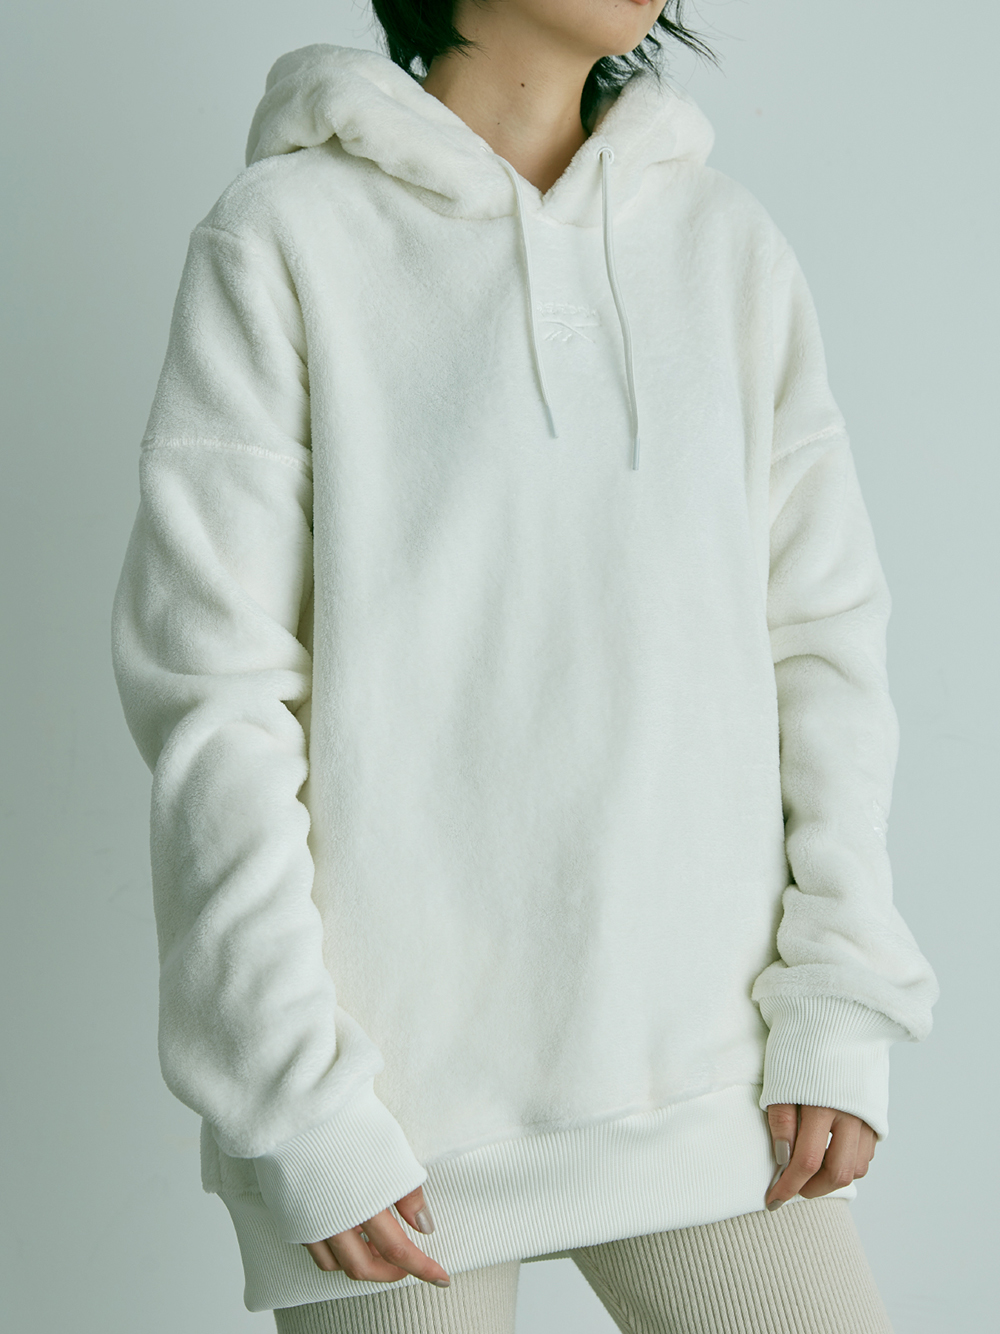 【Reebok聯名】CLASSIC SNIDEL Boyfriend Hooded Top